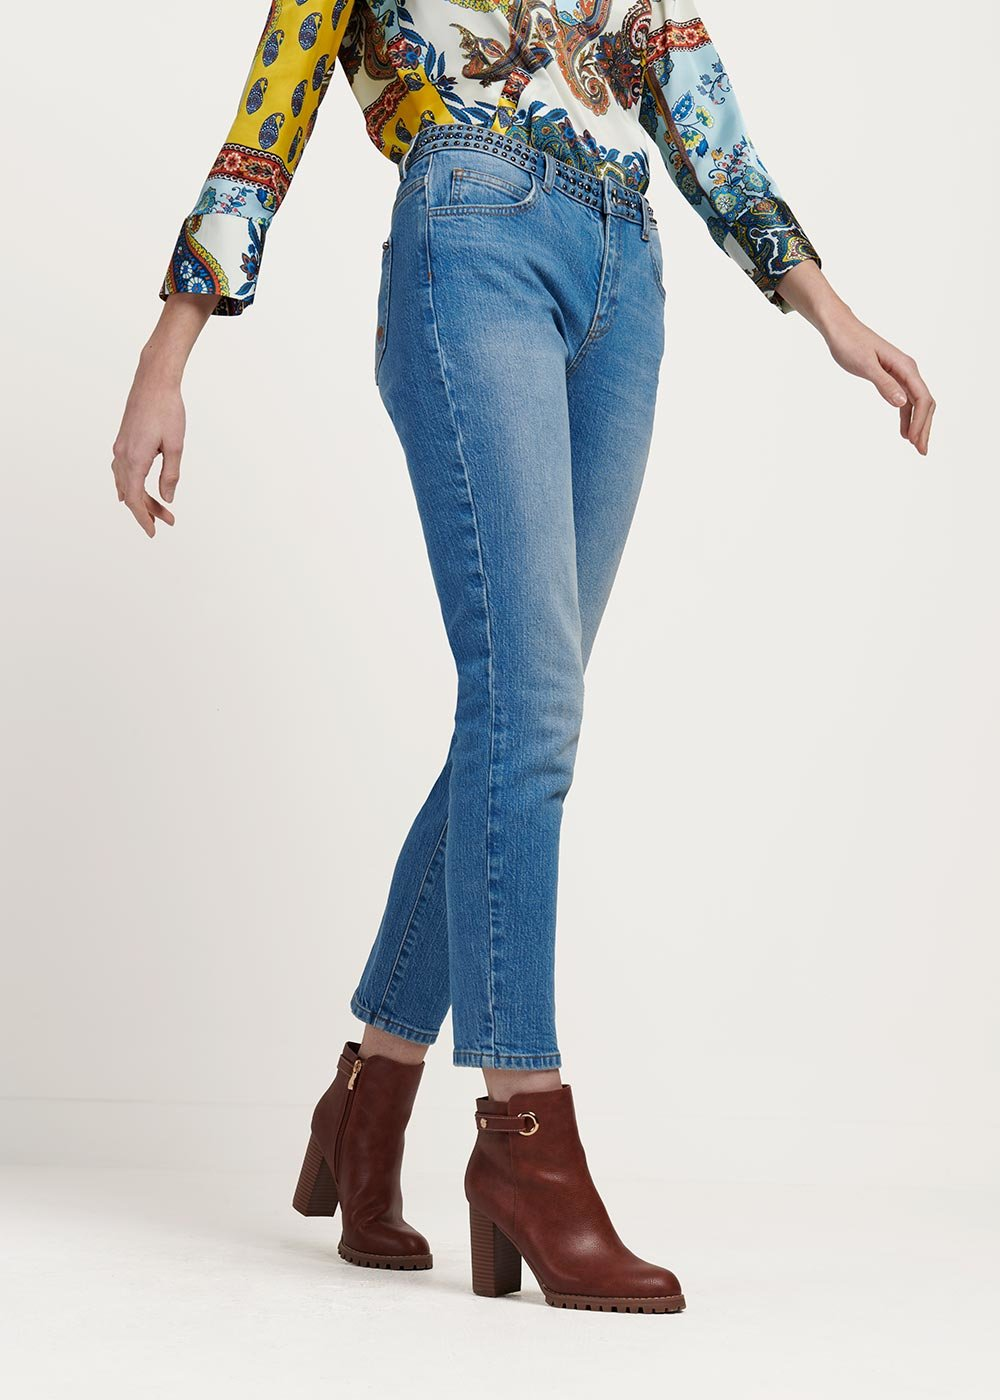 Daisy denim with detail of stones on the bodice - Light Denim - Woman